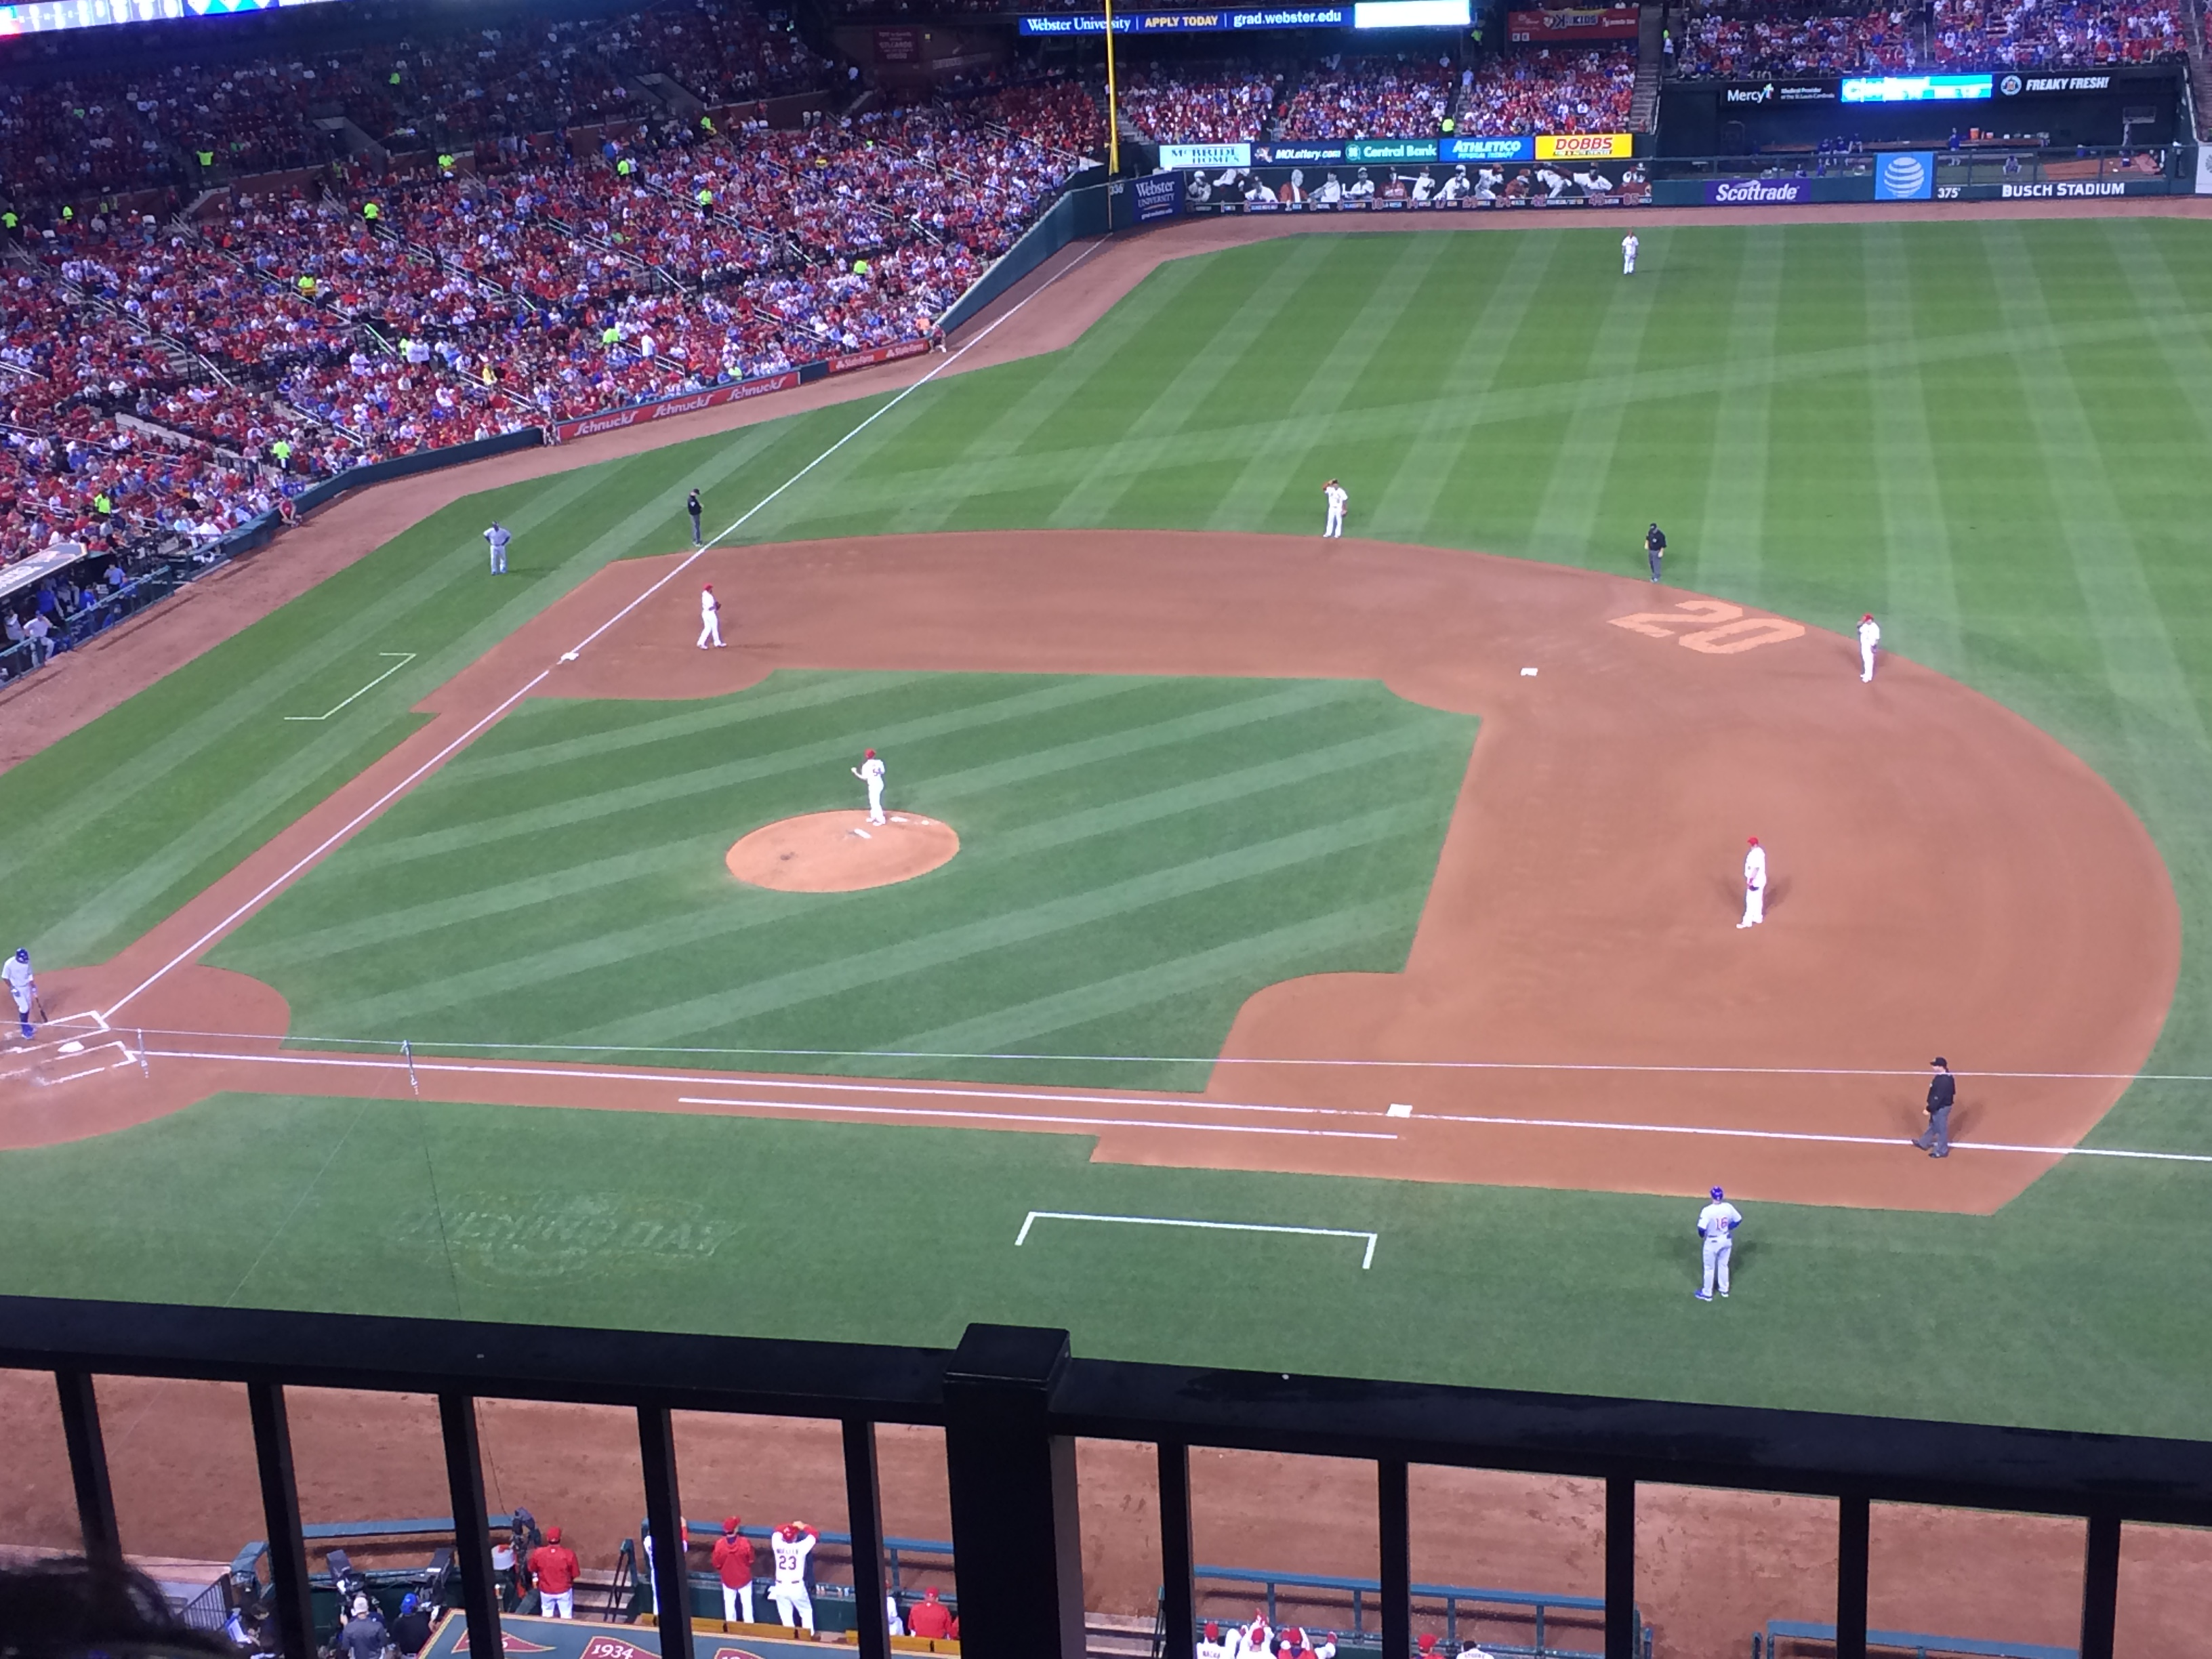 Busch Stadium : Row 2